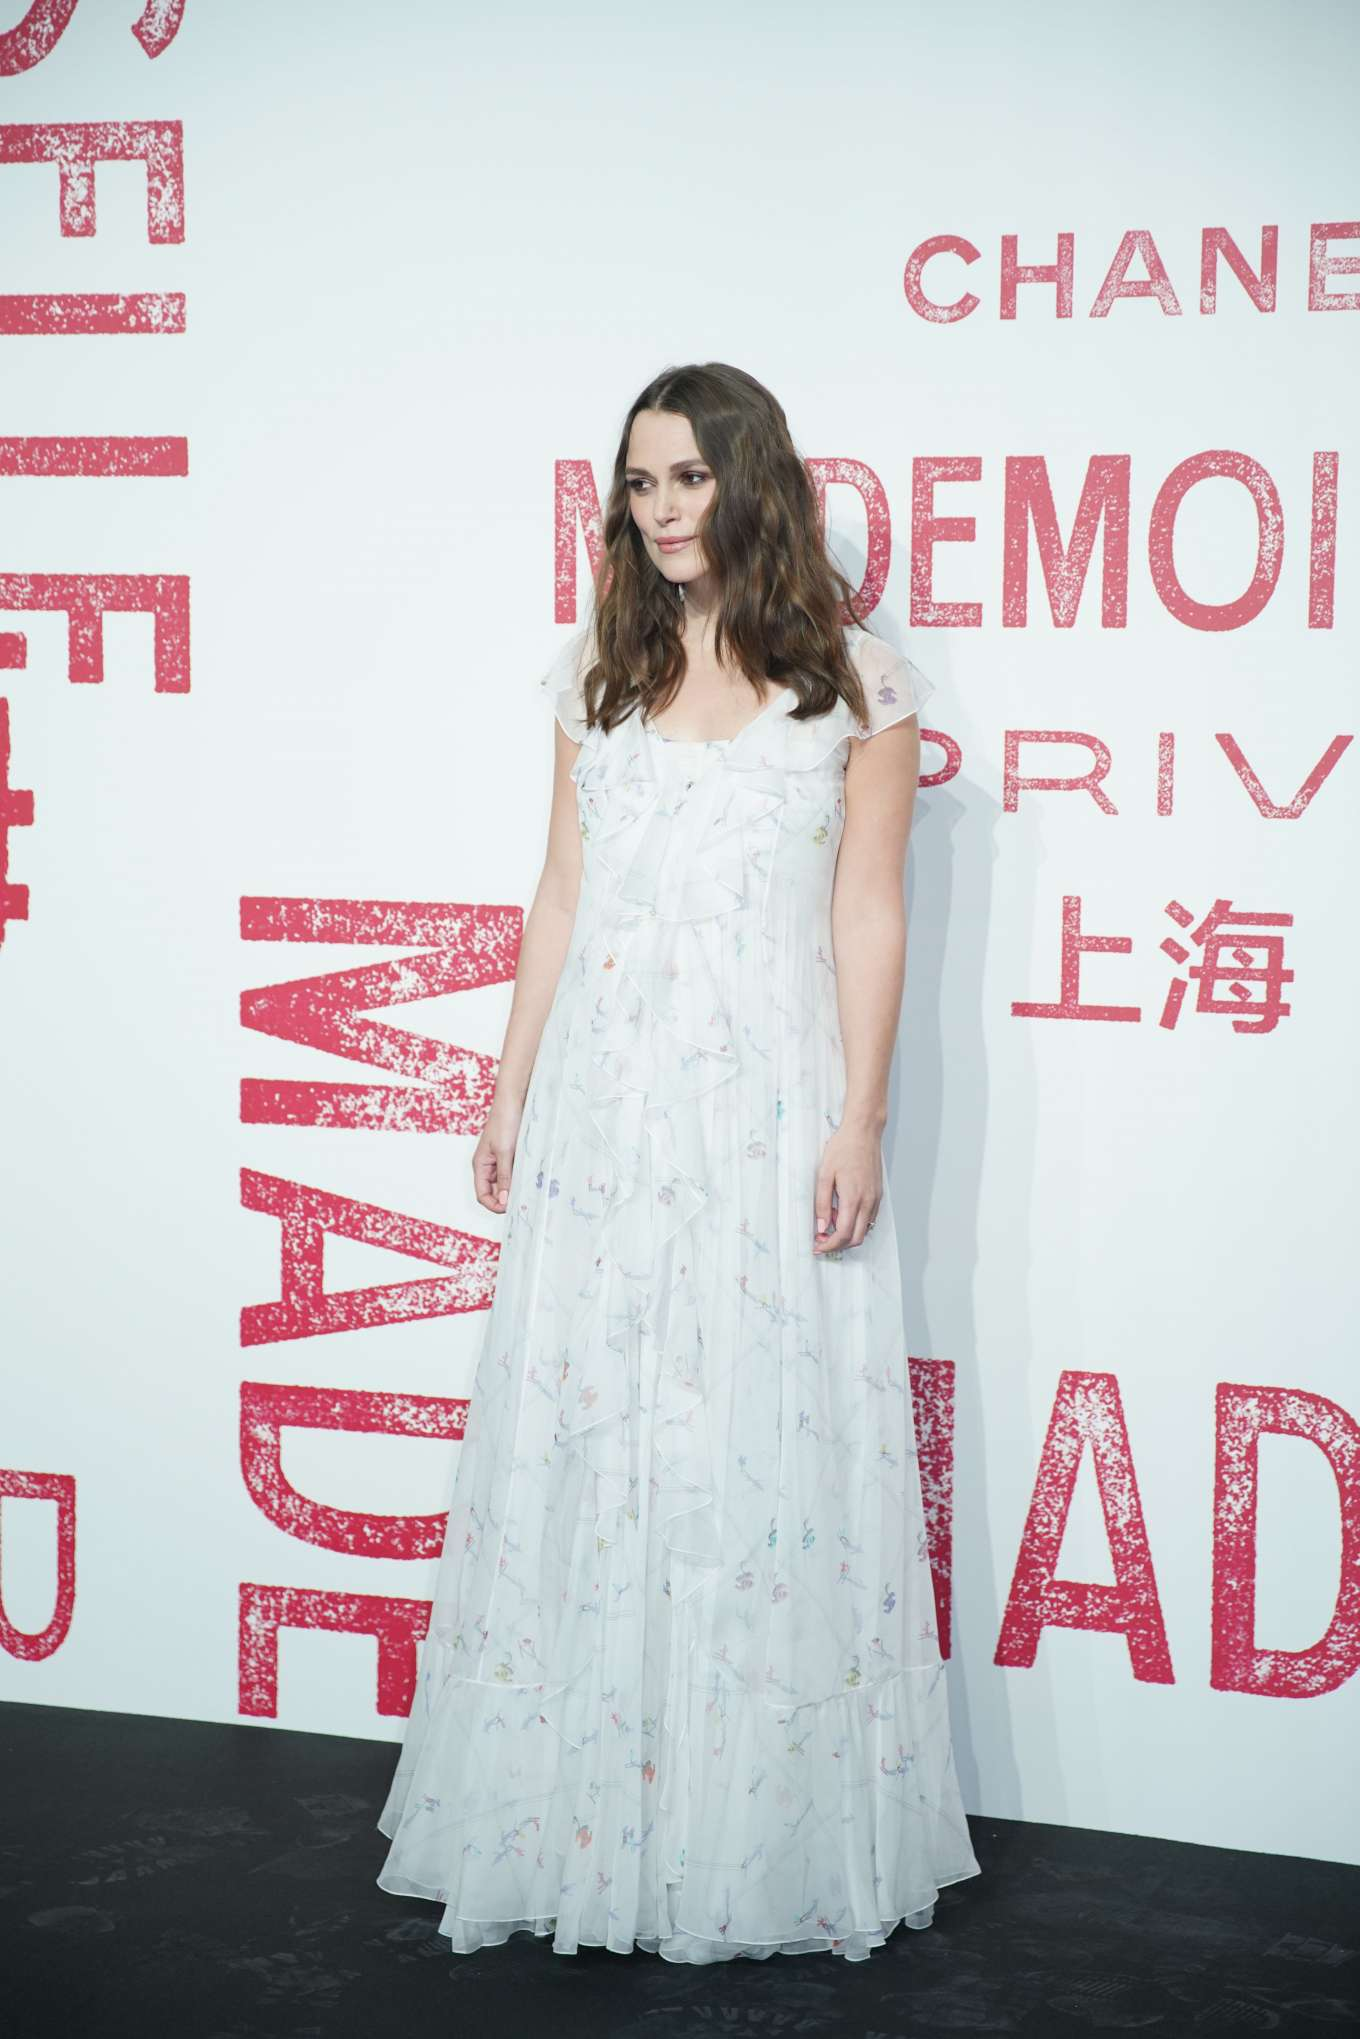 Keira Knightley 2019 : Keira Knightley: Arrives for the Chanel Mademoiselle Prive exhibition -04